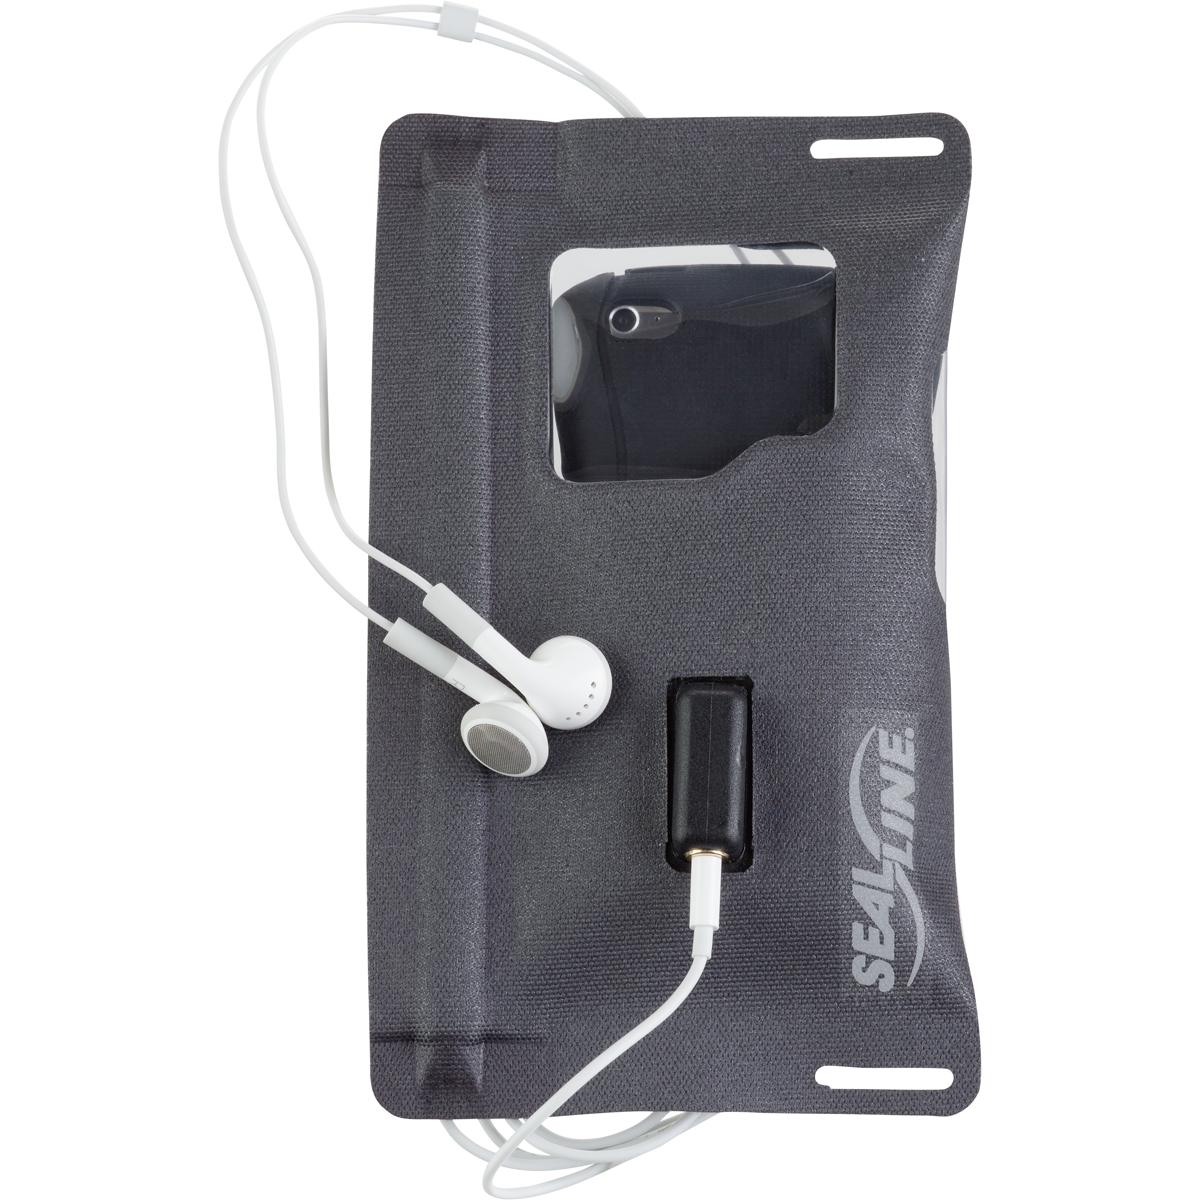 SealLine E-Cases pro iPod/iPhone